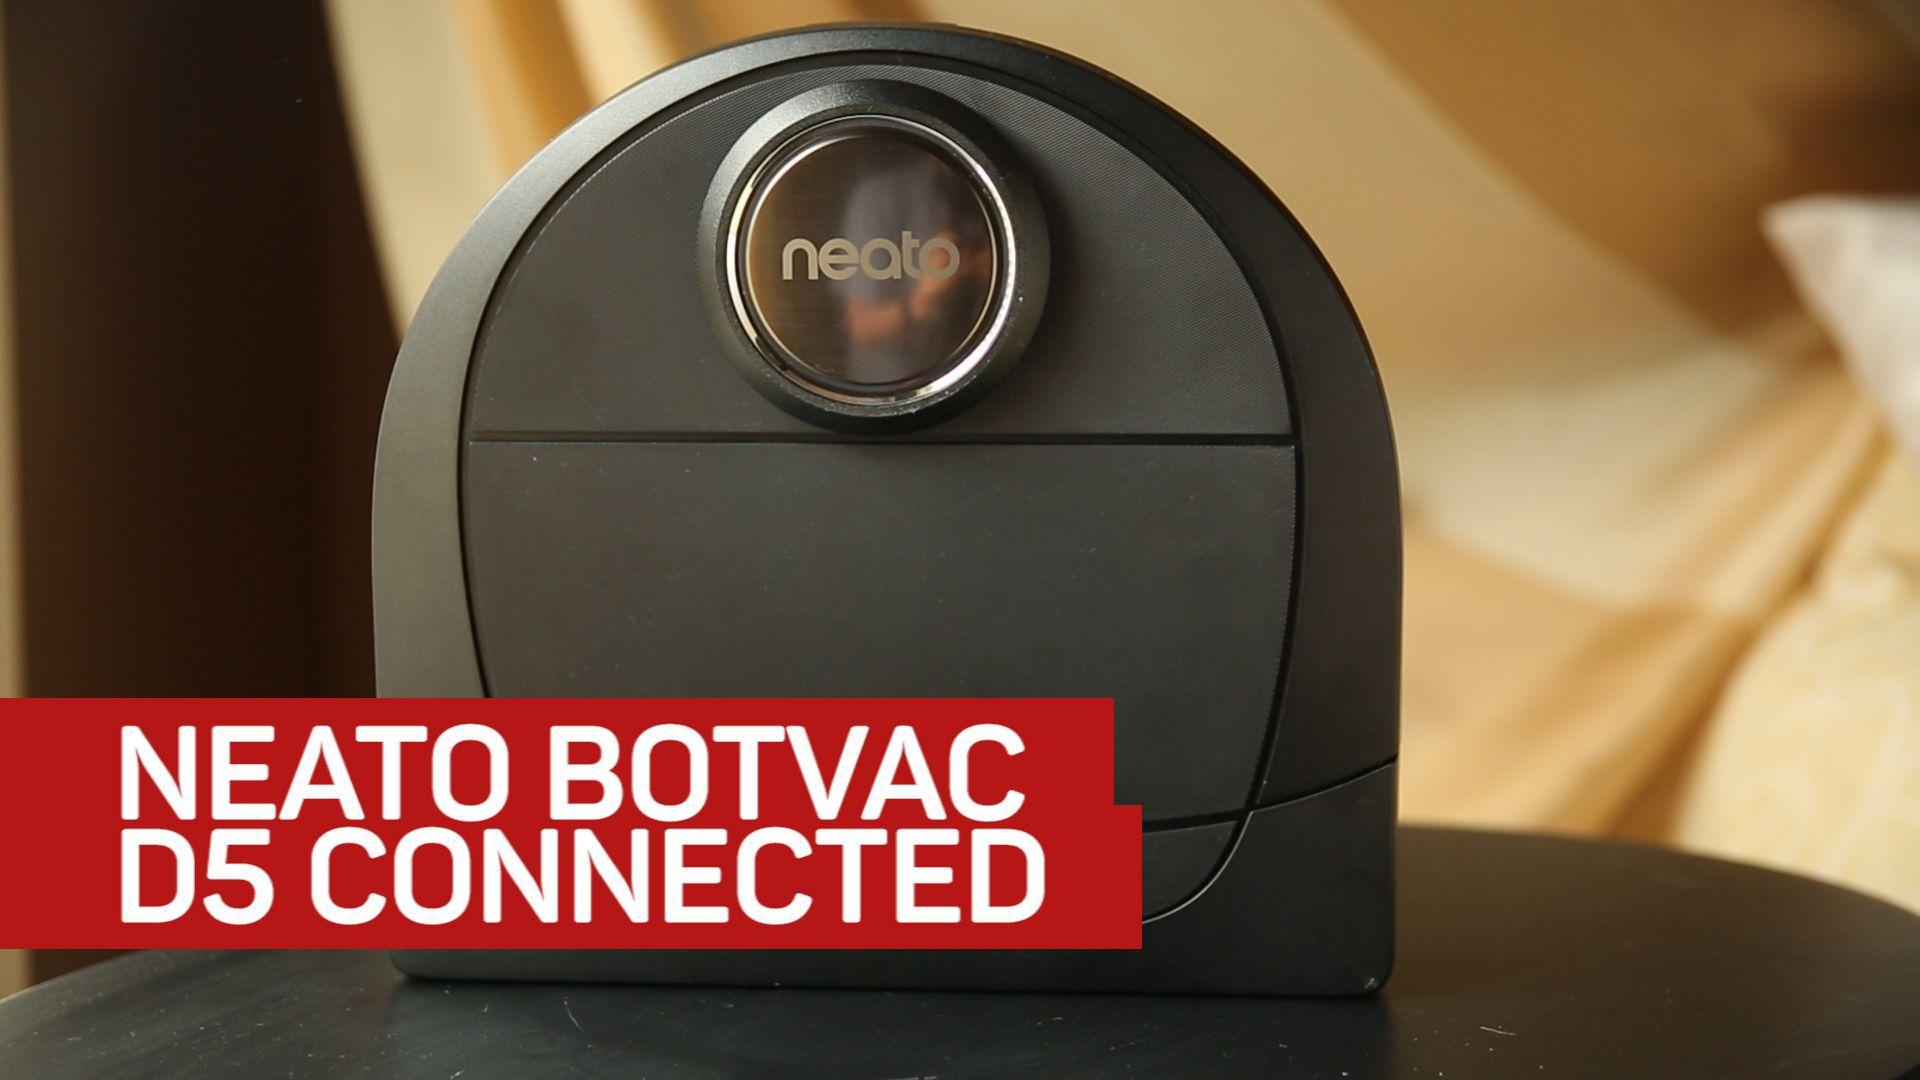 Neato D5 Uses App Smarts to Keep your Floors Clean